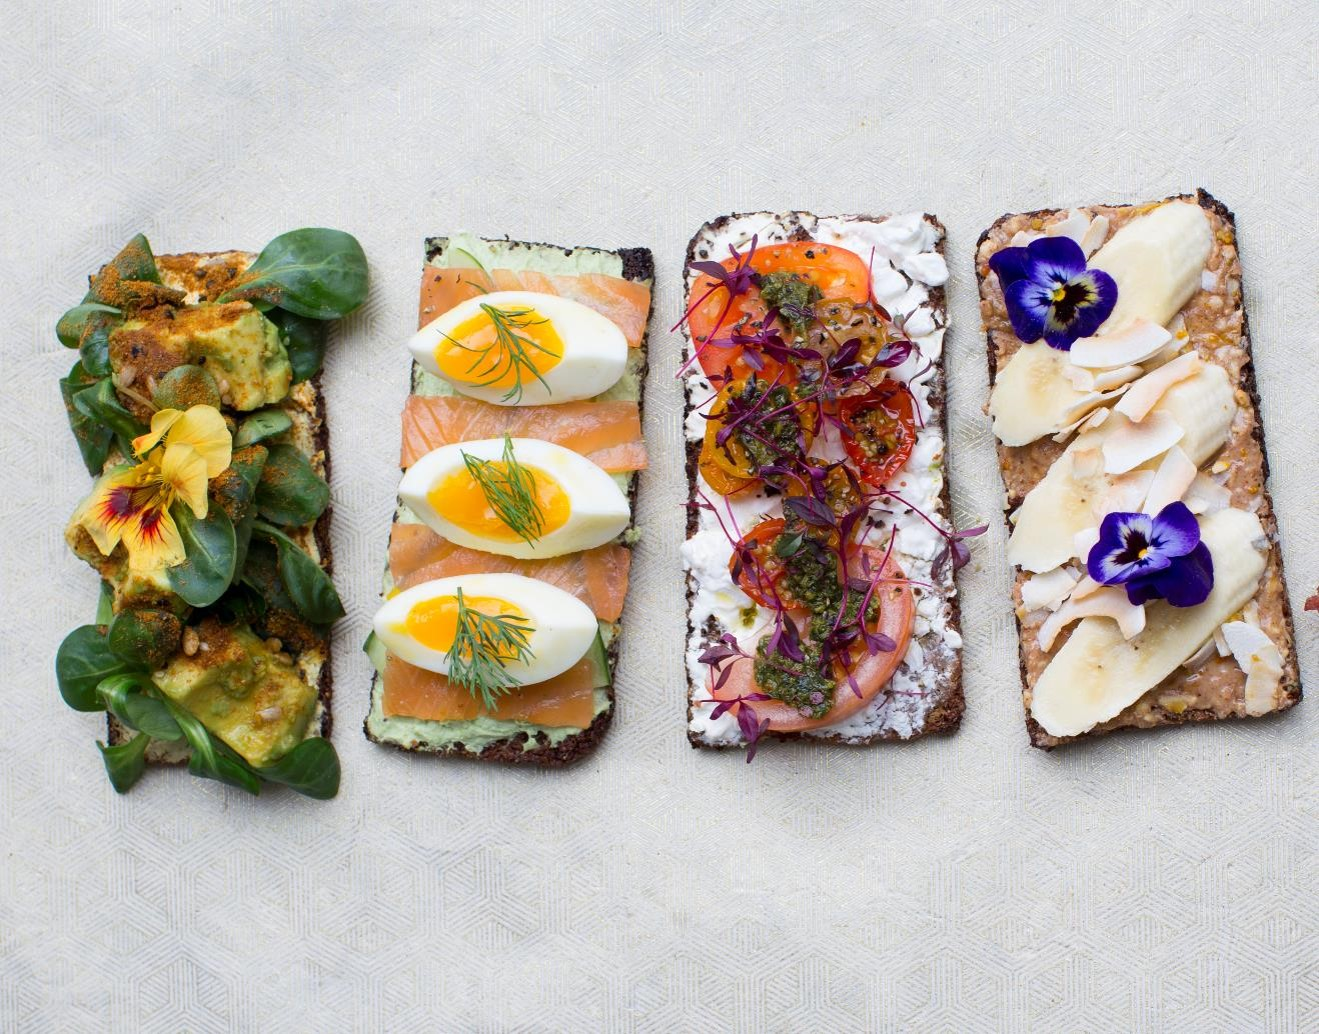 Avocado, egg, smoked salmon and chicken breakfast toasts by Bel|Air